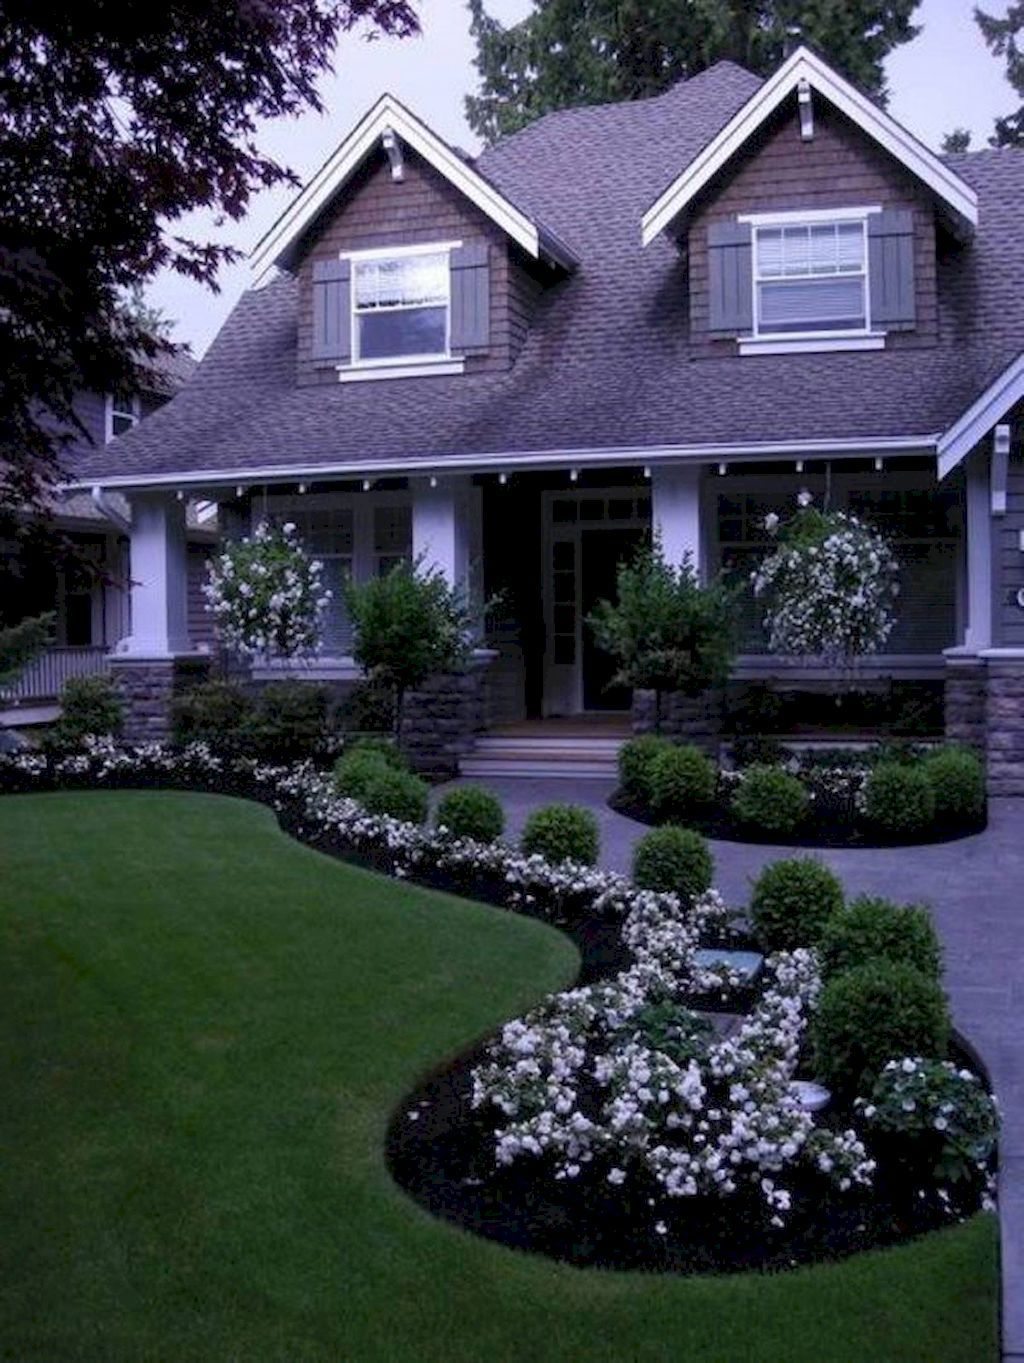 40 beautiful front yard landscaping ideas yard for Front garden design